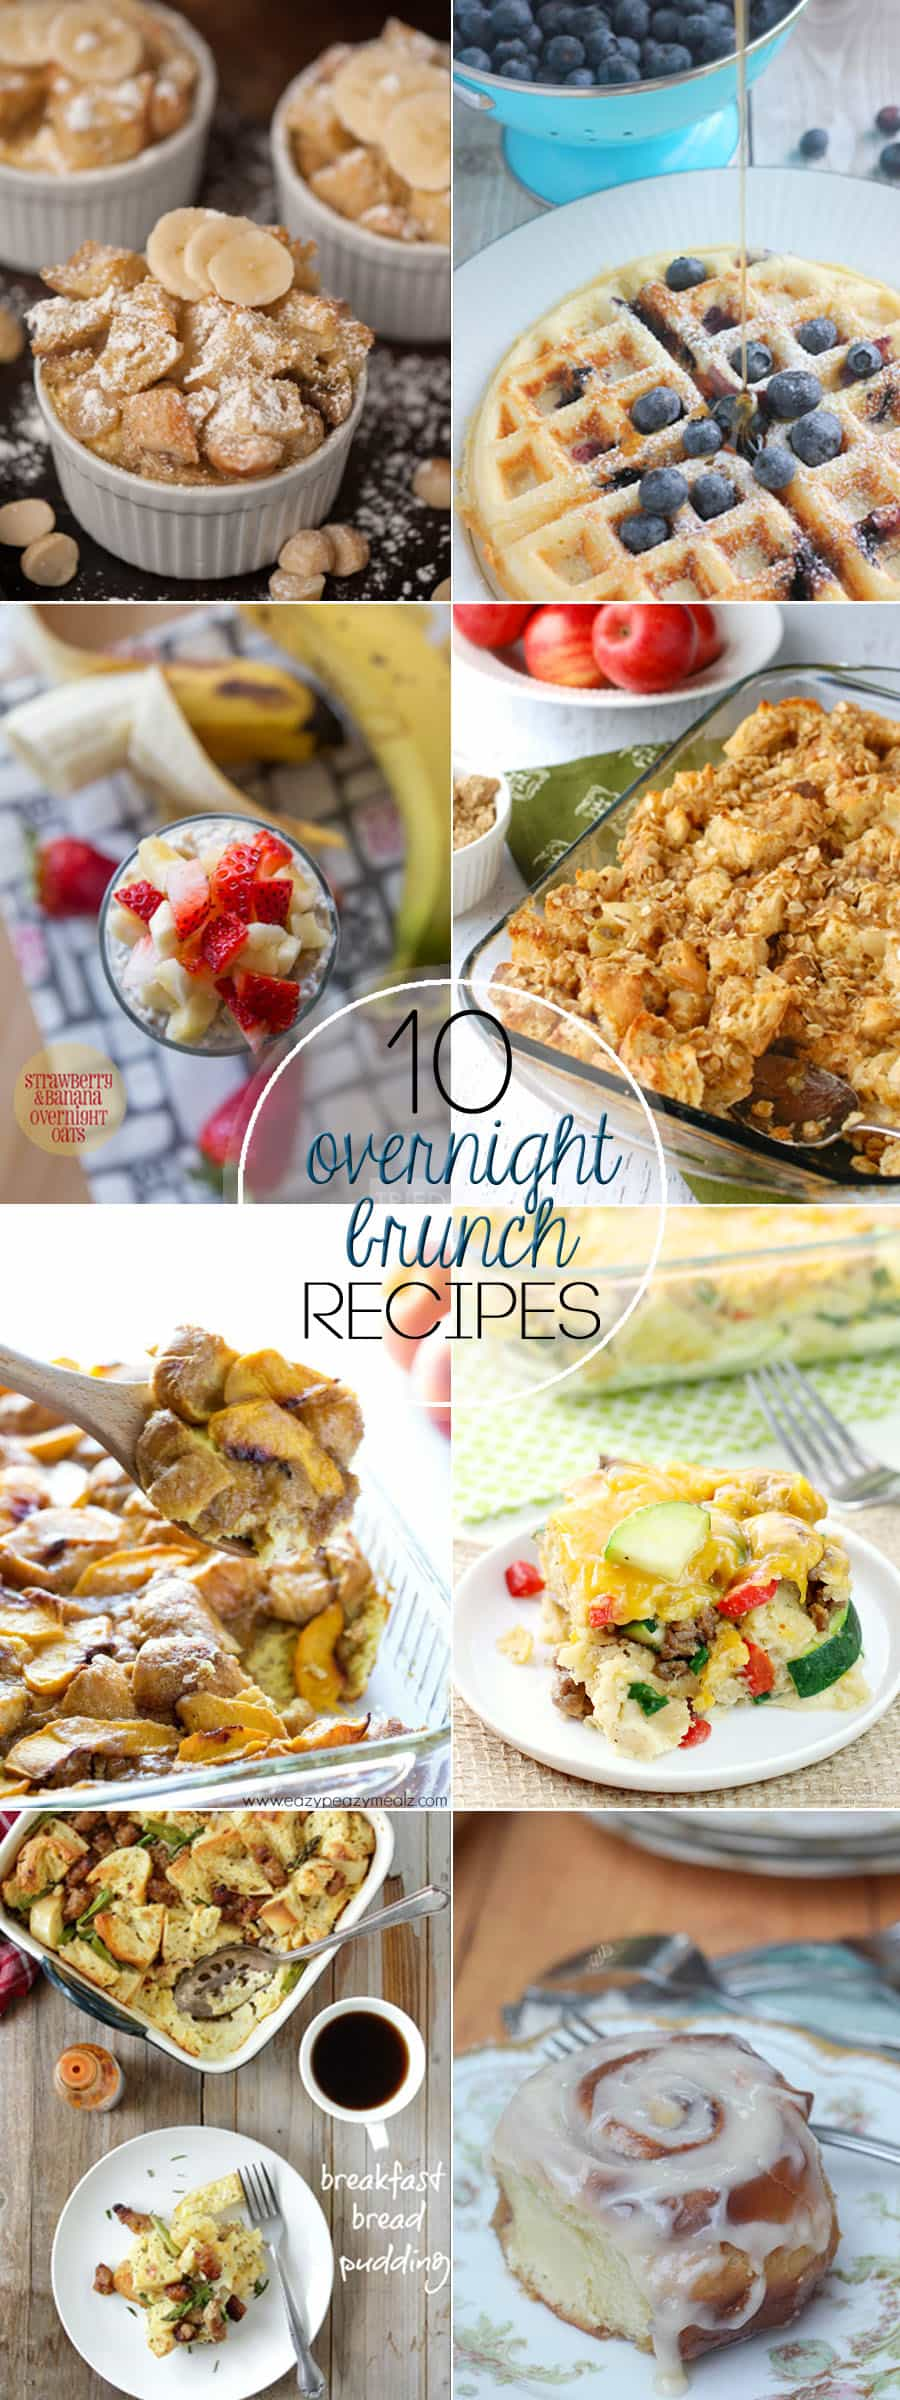 Whether you're looking forward to a special holiday breakfast or waking up to a delicious meal, your family will love these 10 Overnight Brunch Recipes.